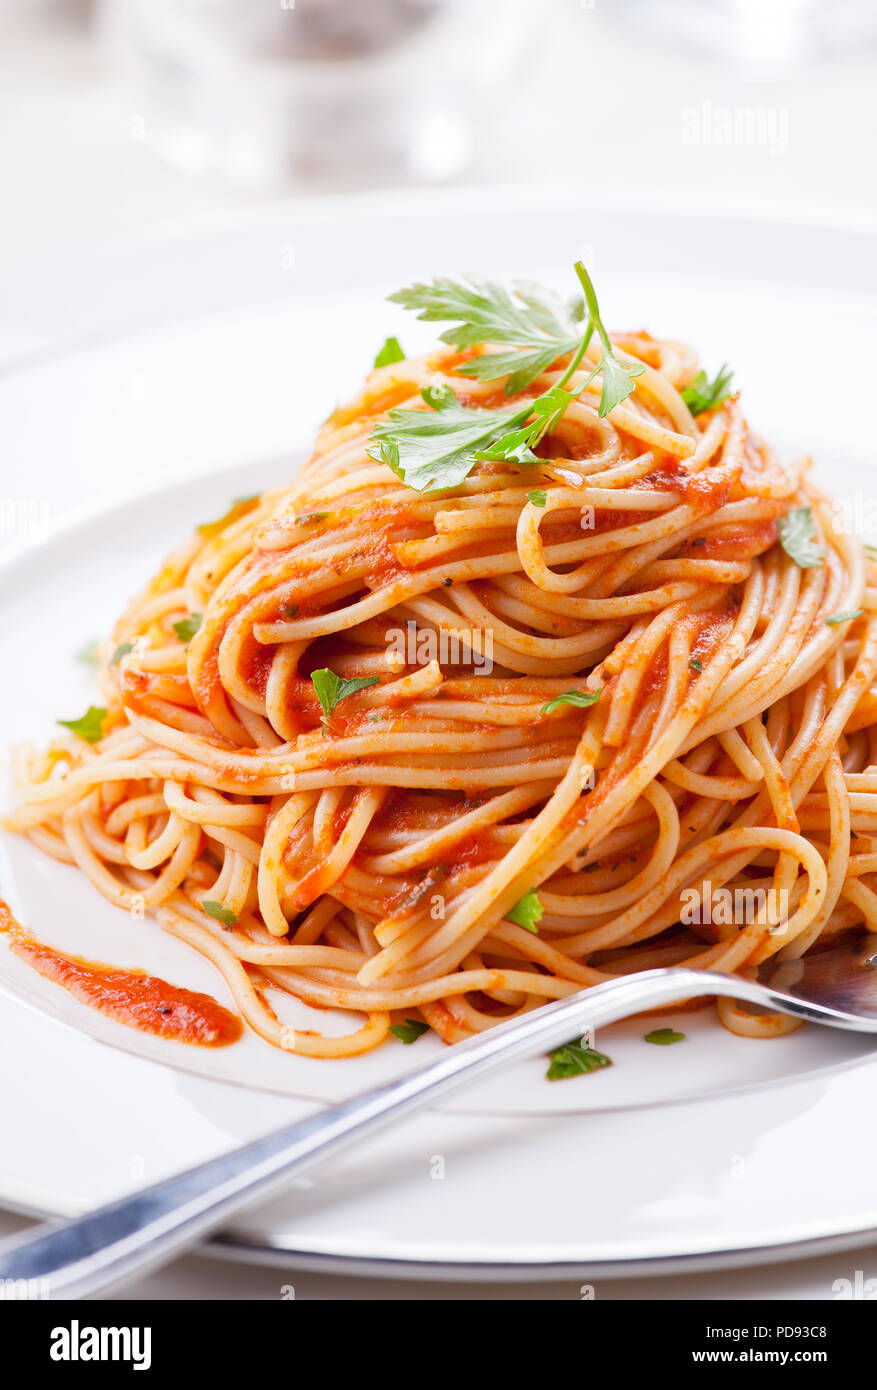 Plate of pasta with homemade tomato sauce and parsley - Stock Image